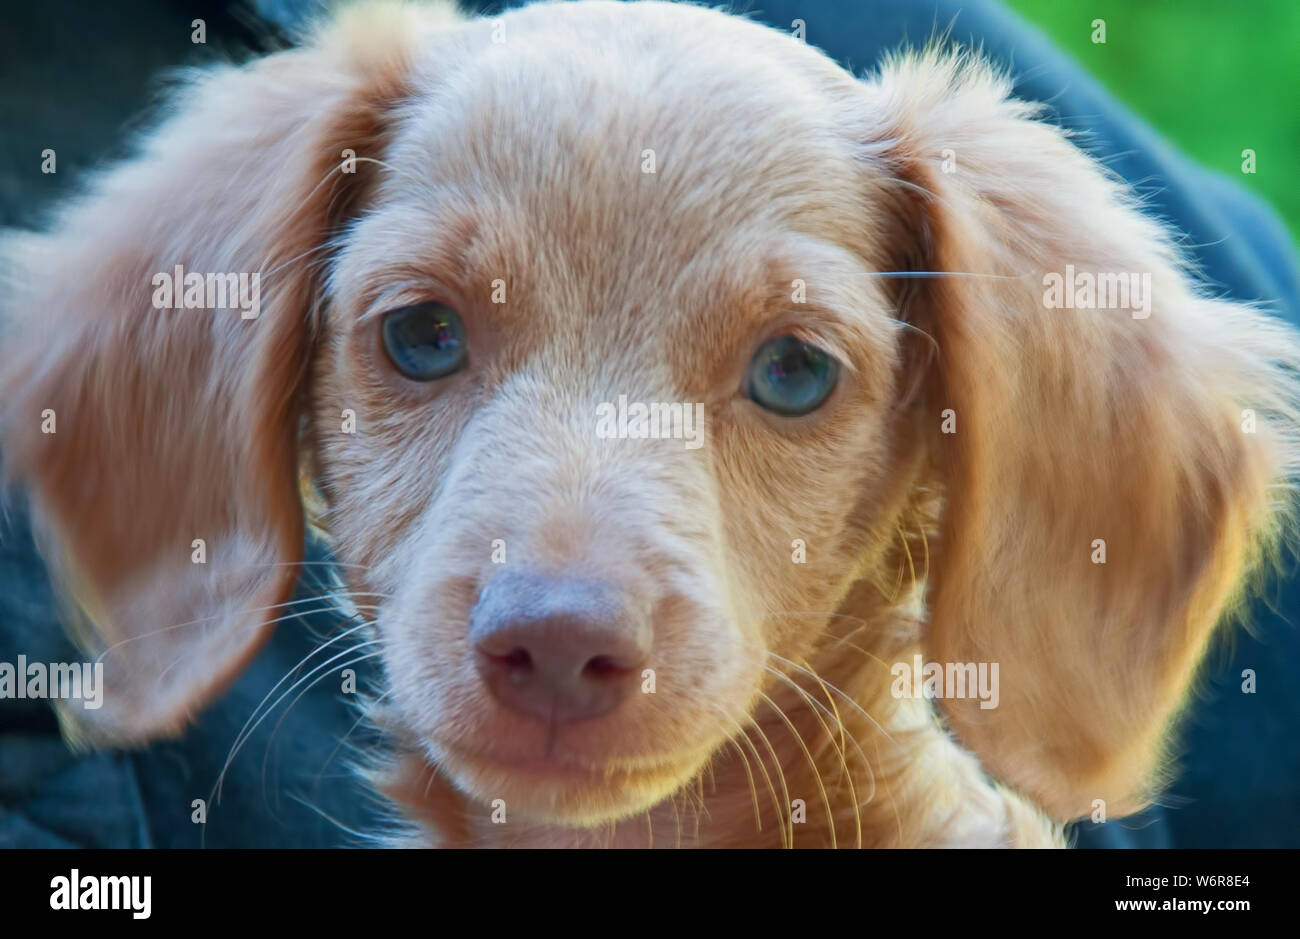 Photograph Of A Blonde Blue Eyed Longhair Dachshund Puppy Stock Photo Alamy